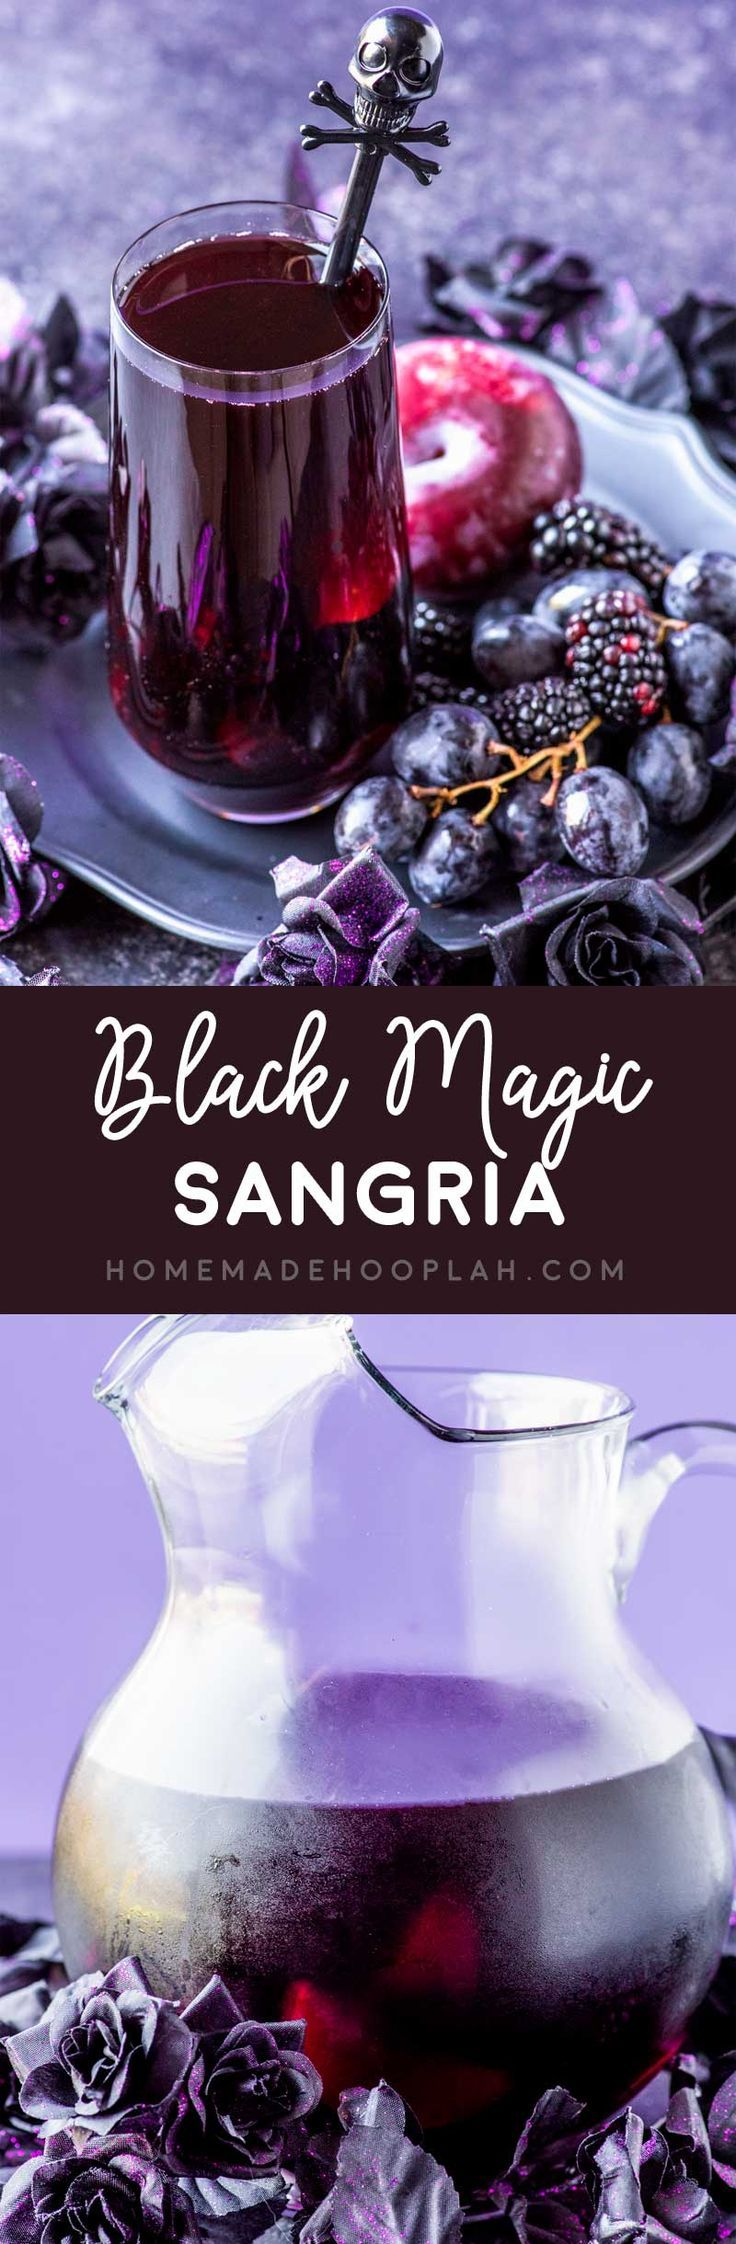 Black Magic Sangria! This black magic drink is a purple punch mixed with blackberries, black grapes, and black plums. Can be made tart or sweet. | HomemadeHooplah.com